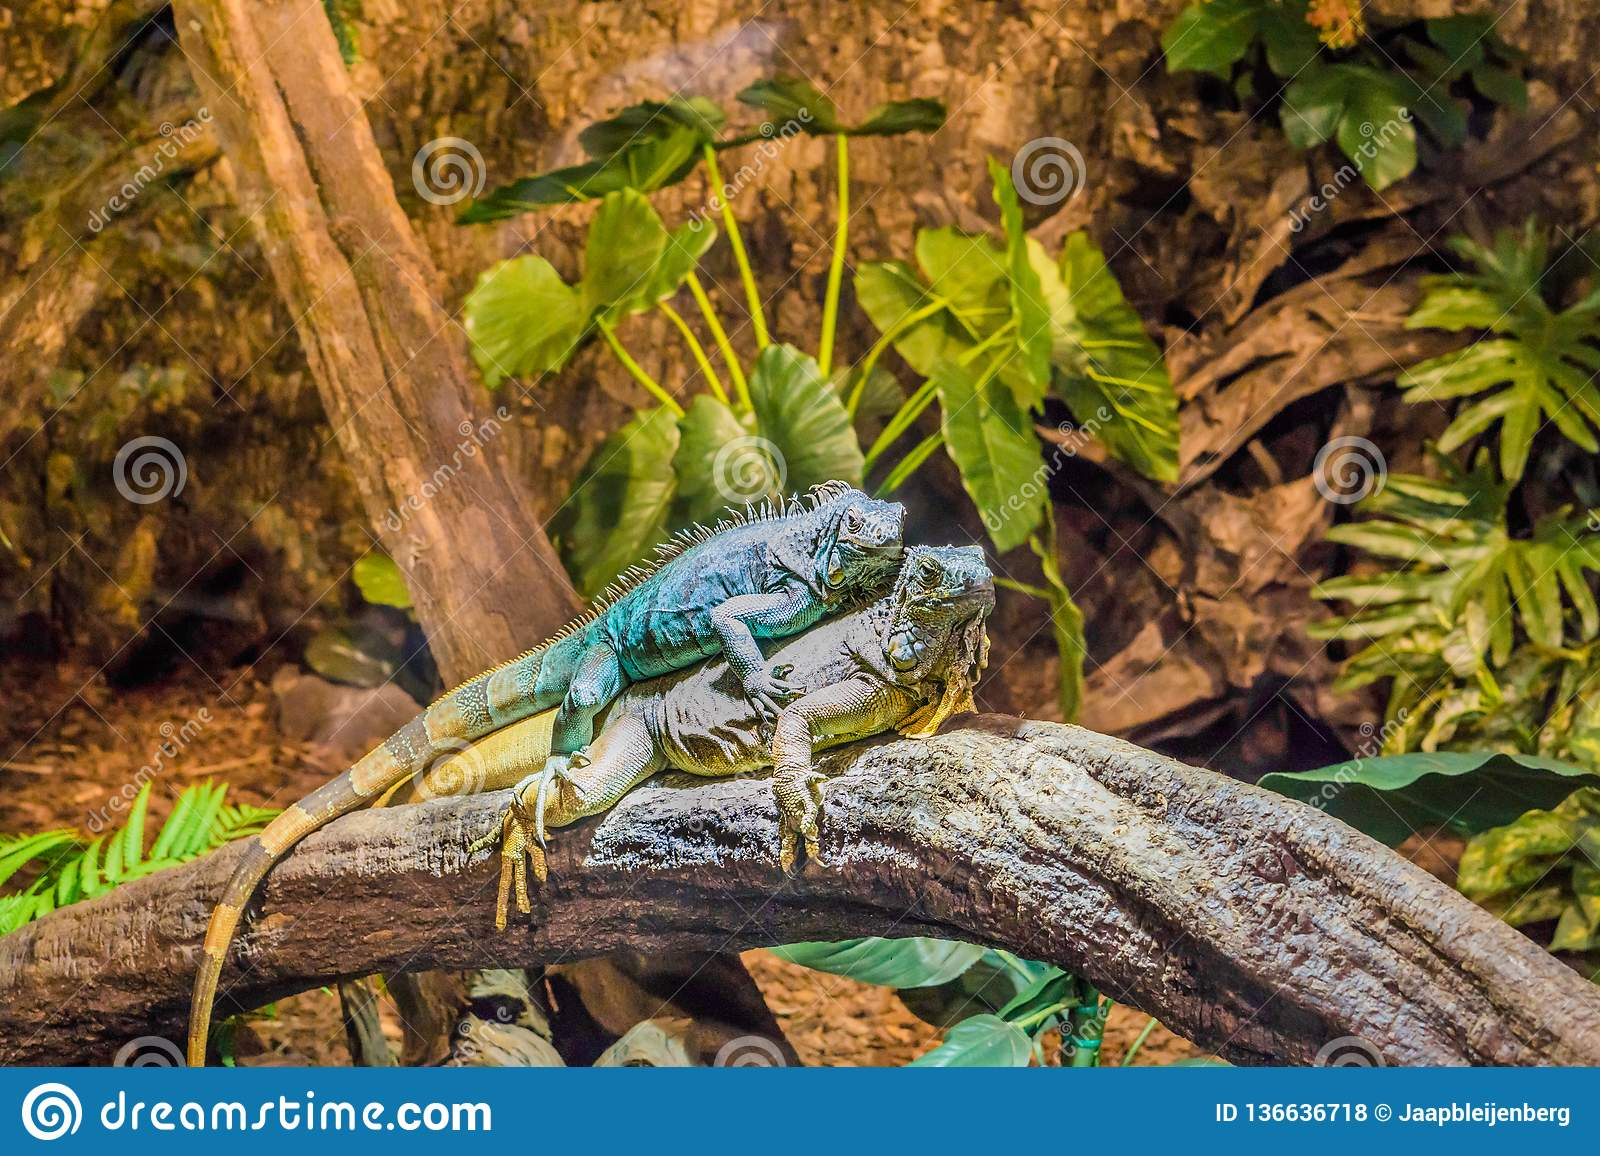 Two funny iguanas laying on top of each other, dominant animal behavior, popular pets in herpetoculture